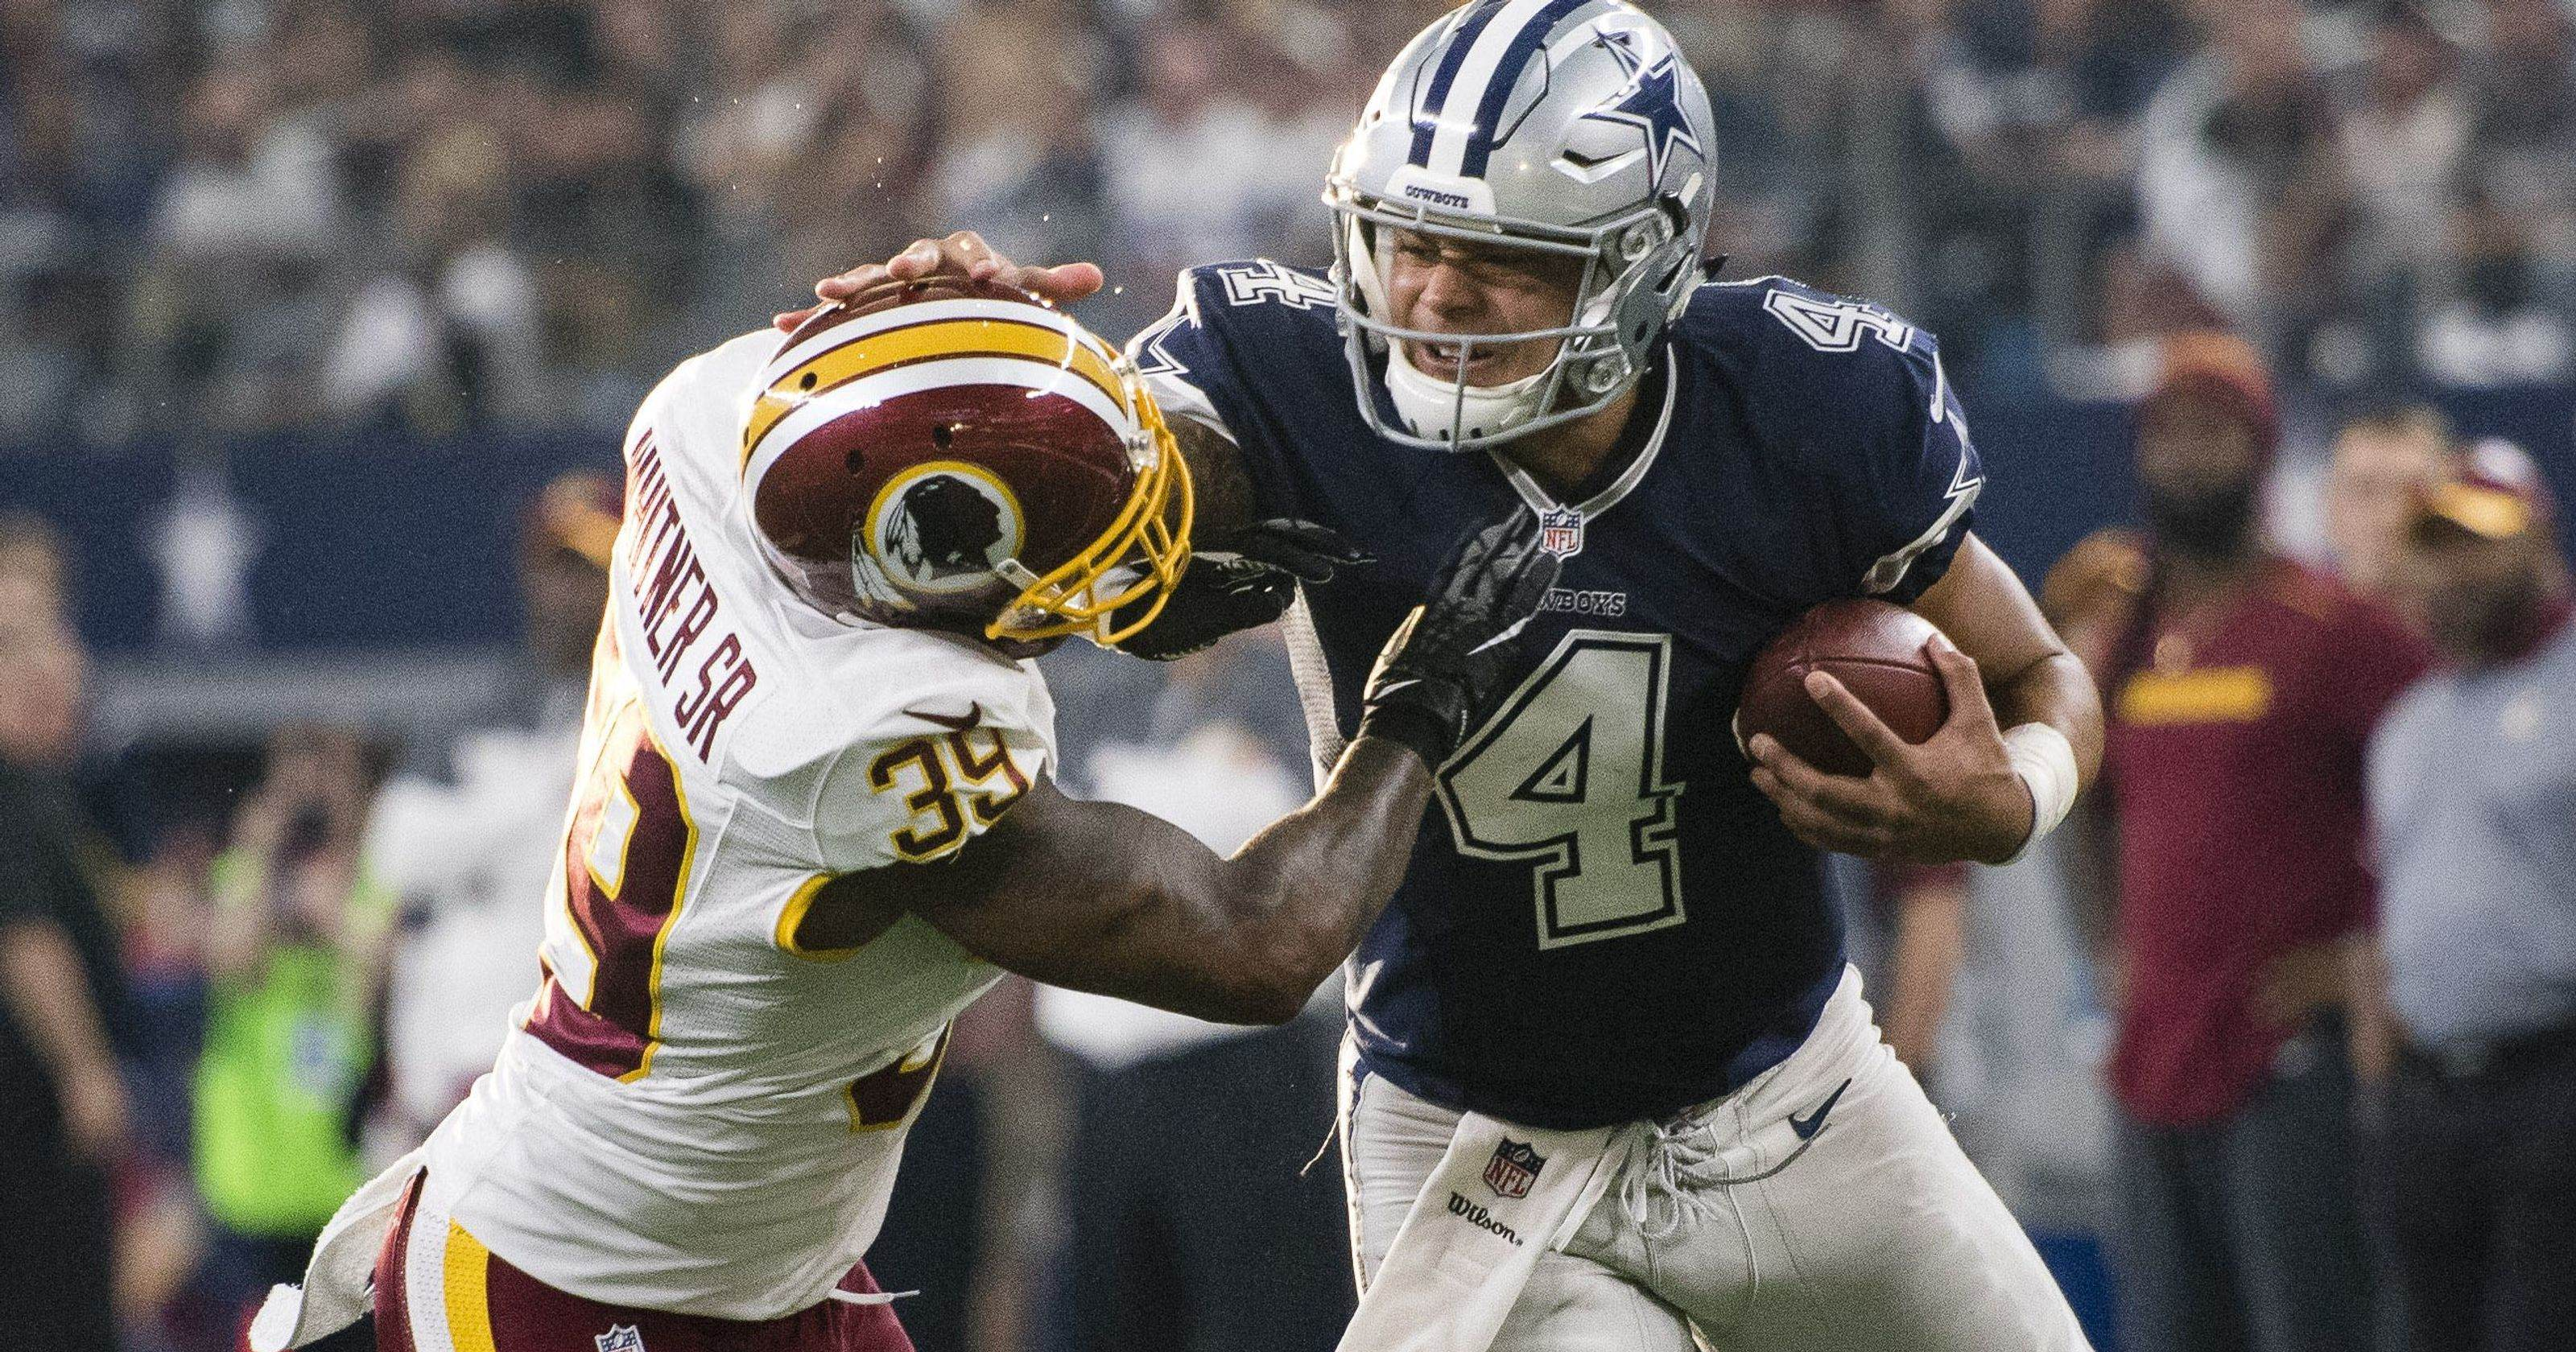 Cowboys-Redskins Preview and Prediction: Nothing Like A Good Rivalry Game, Right?